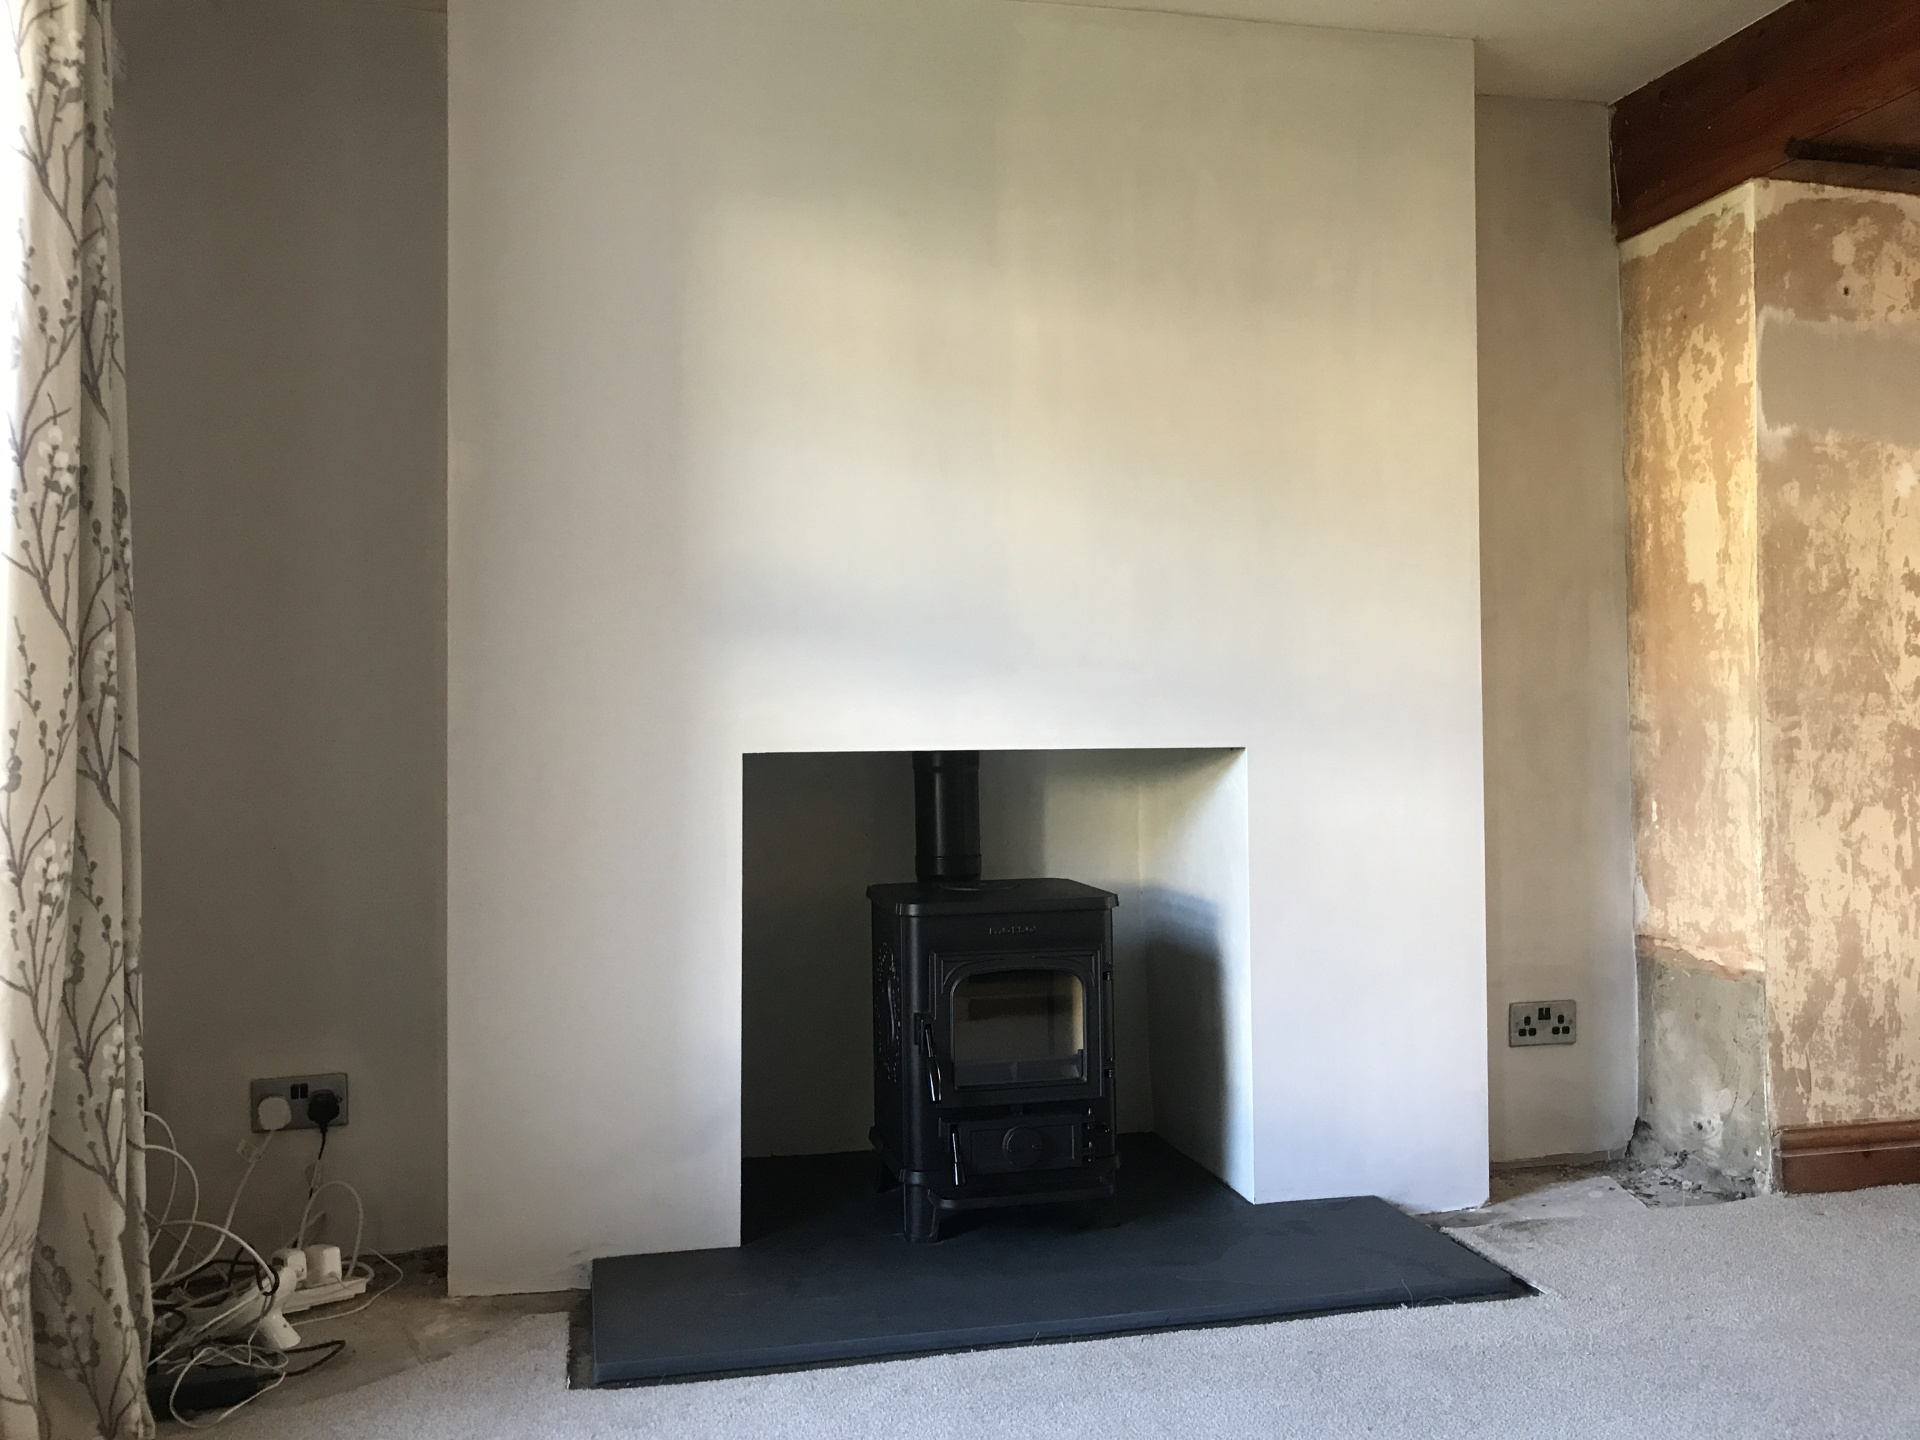 multifuel stove installed, stove installation, fireplace